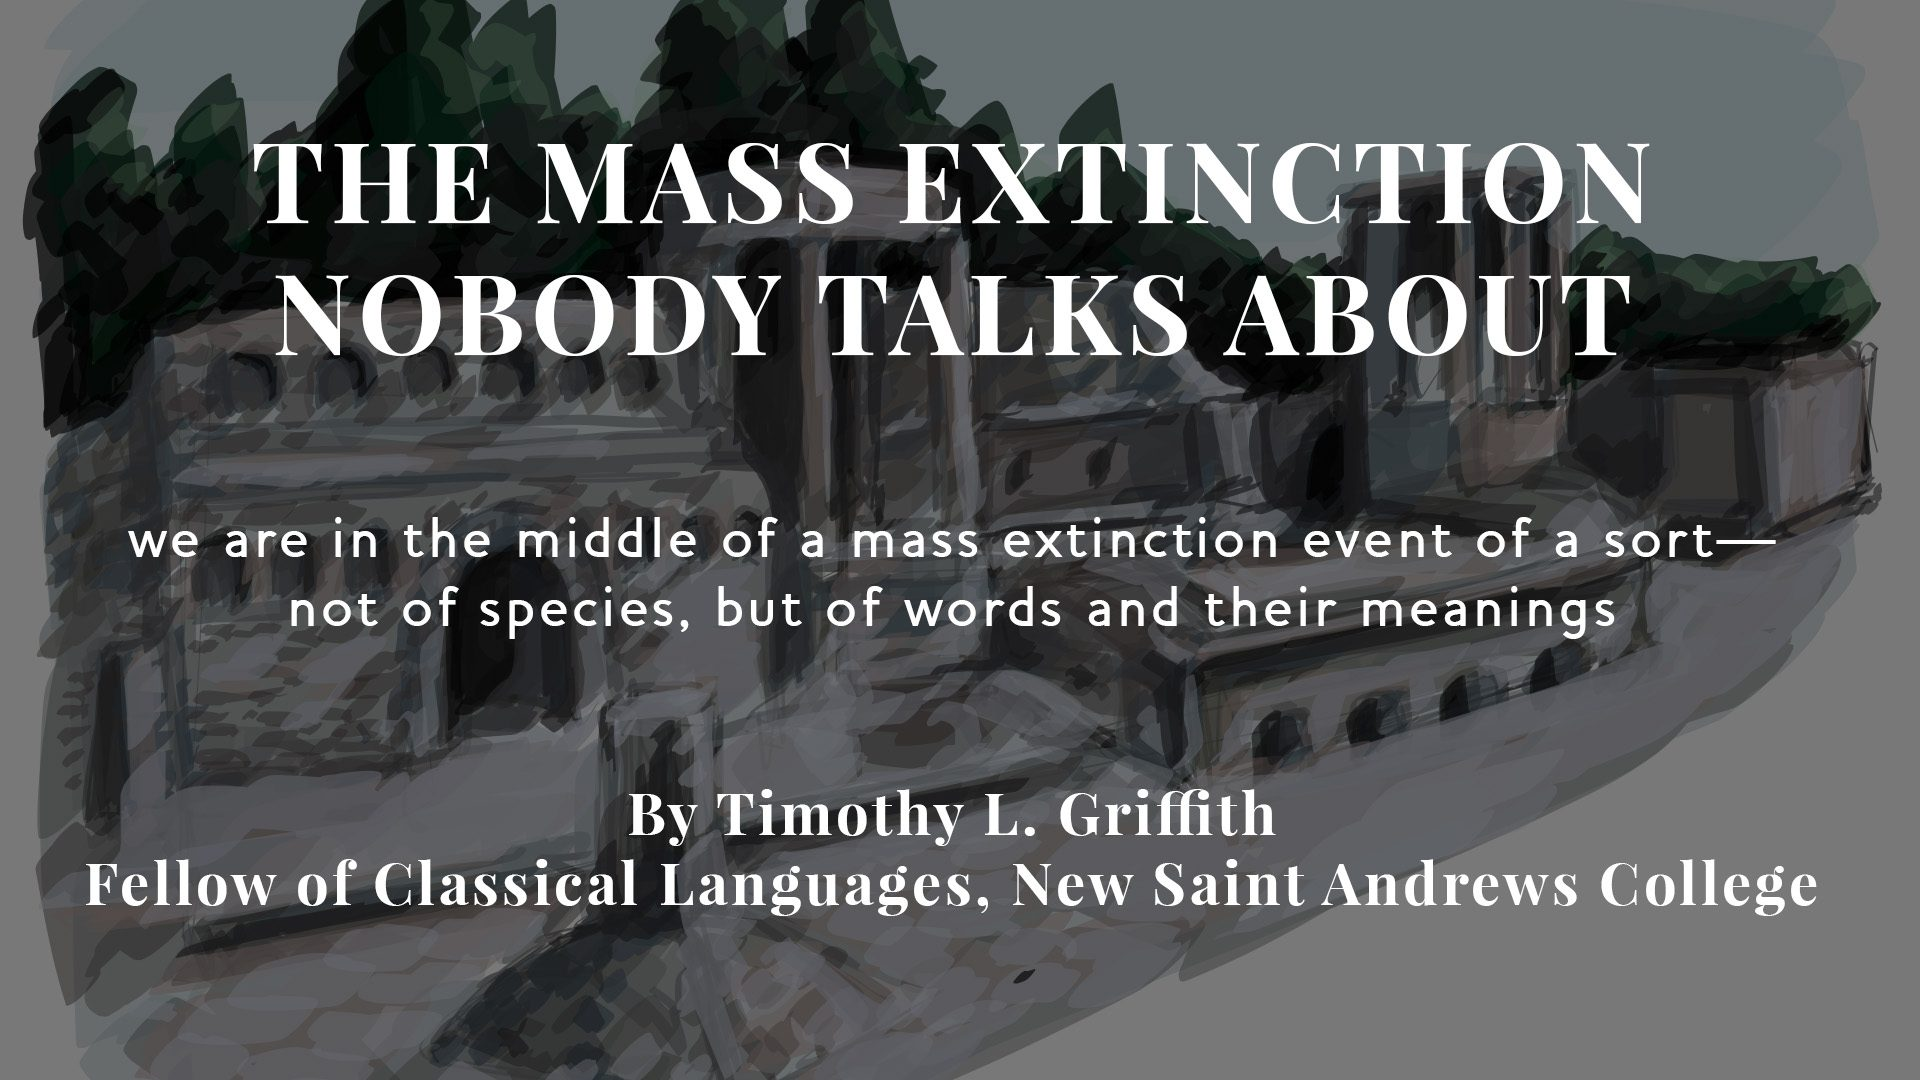 The Mass Extinction Nobody Talks About